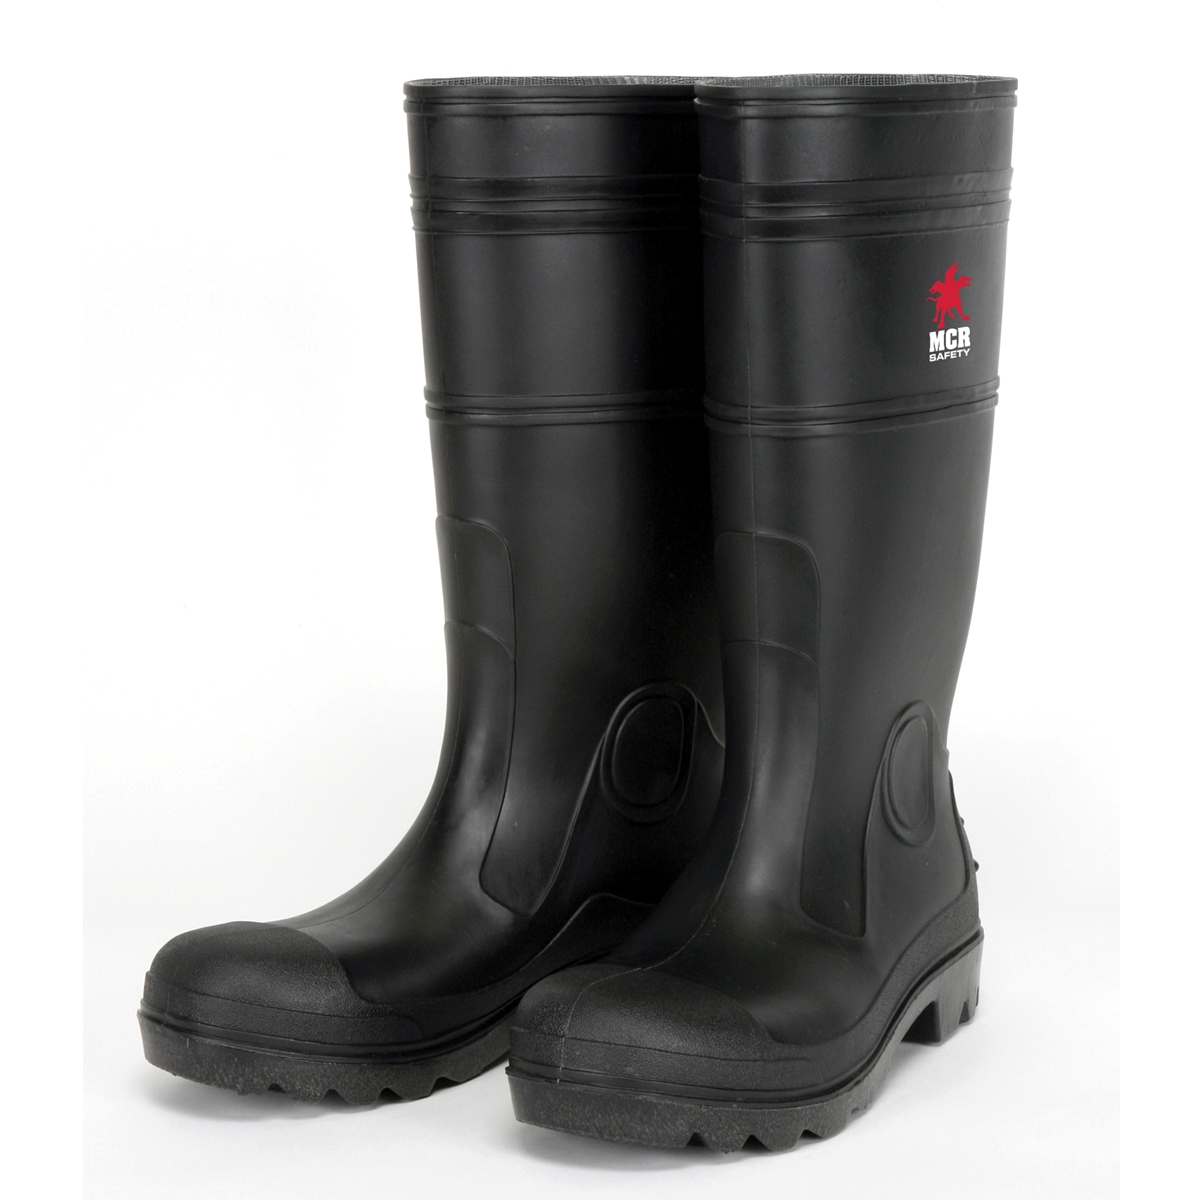 River City PBS120 Steel Toe PVC Rain Boots - Black | FullSource.com